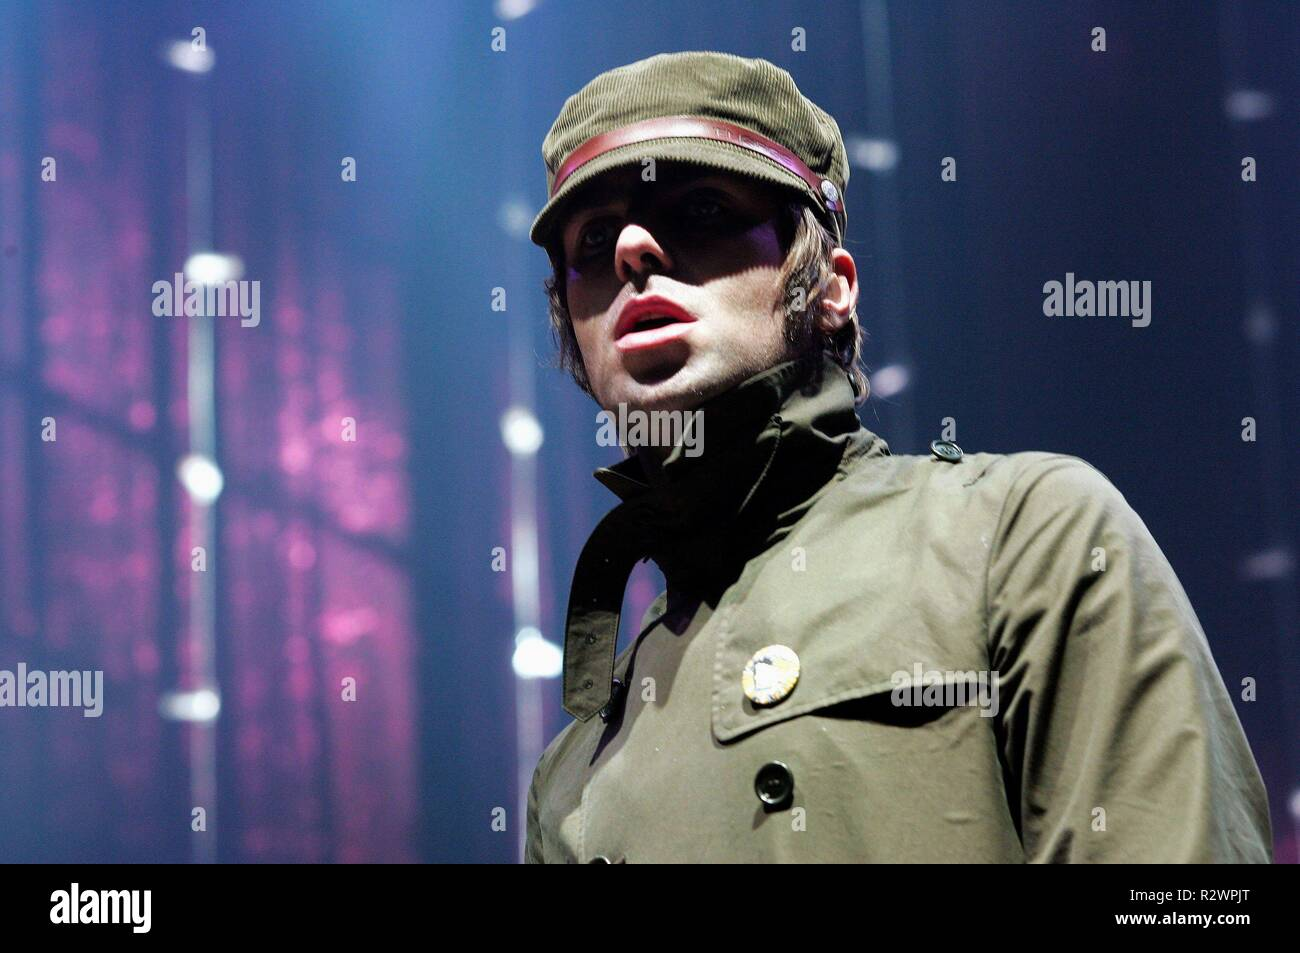 LIAM GALLAGHER  OASIS 20 October 2005 CTS61893 Allstar/Cinetext/HAMBURG - Stock Image